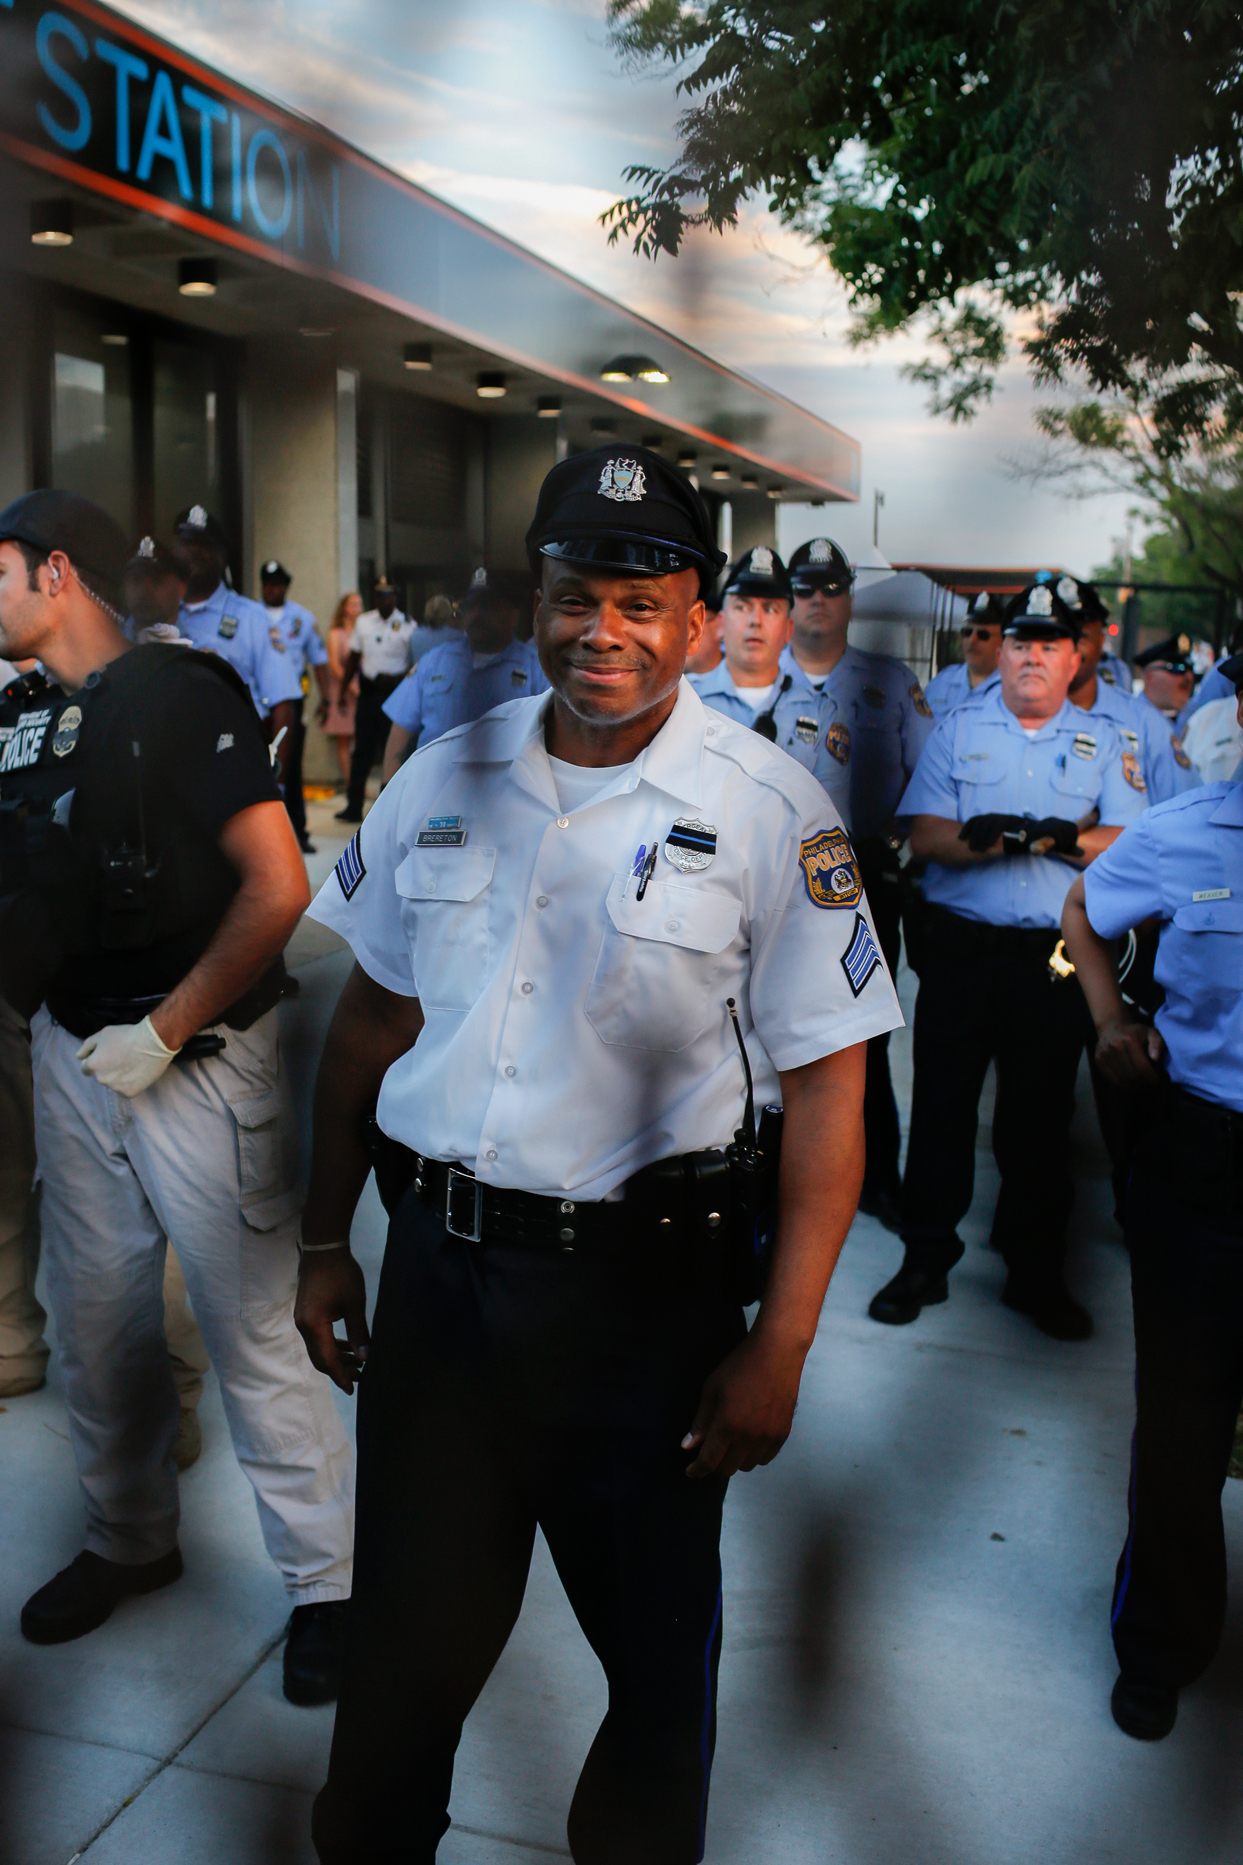 Philly Police Officer Smiling Through the Barricade